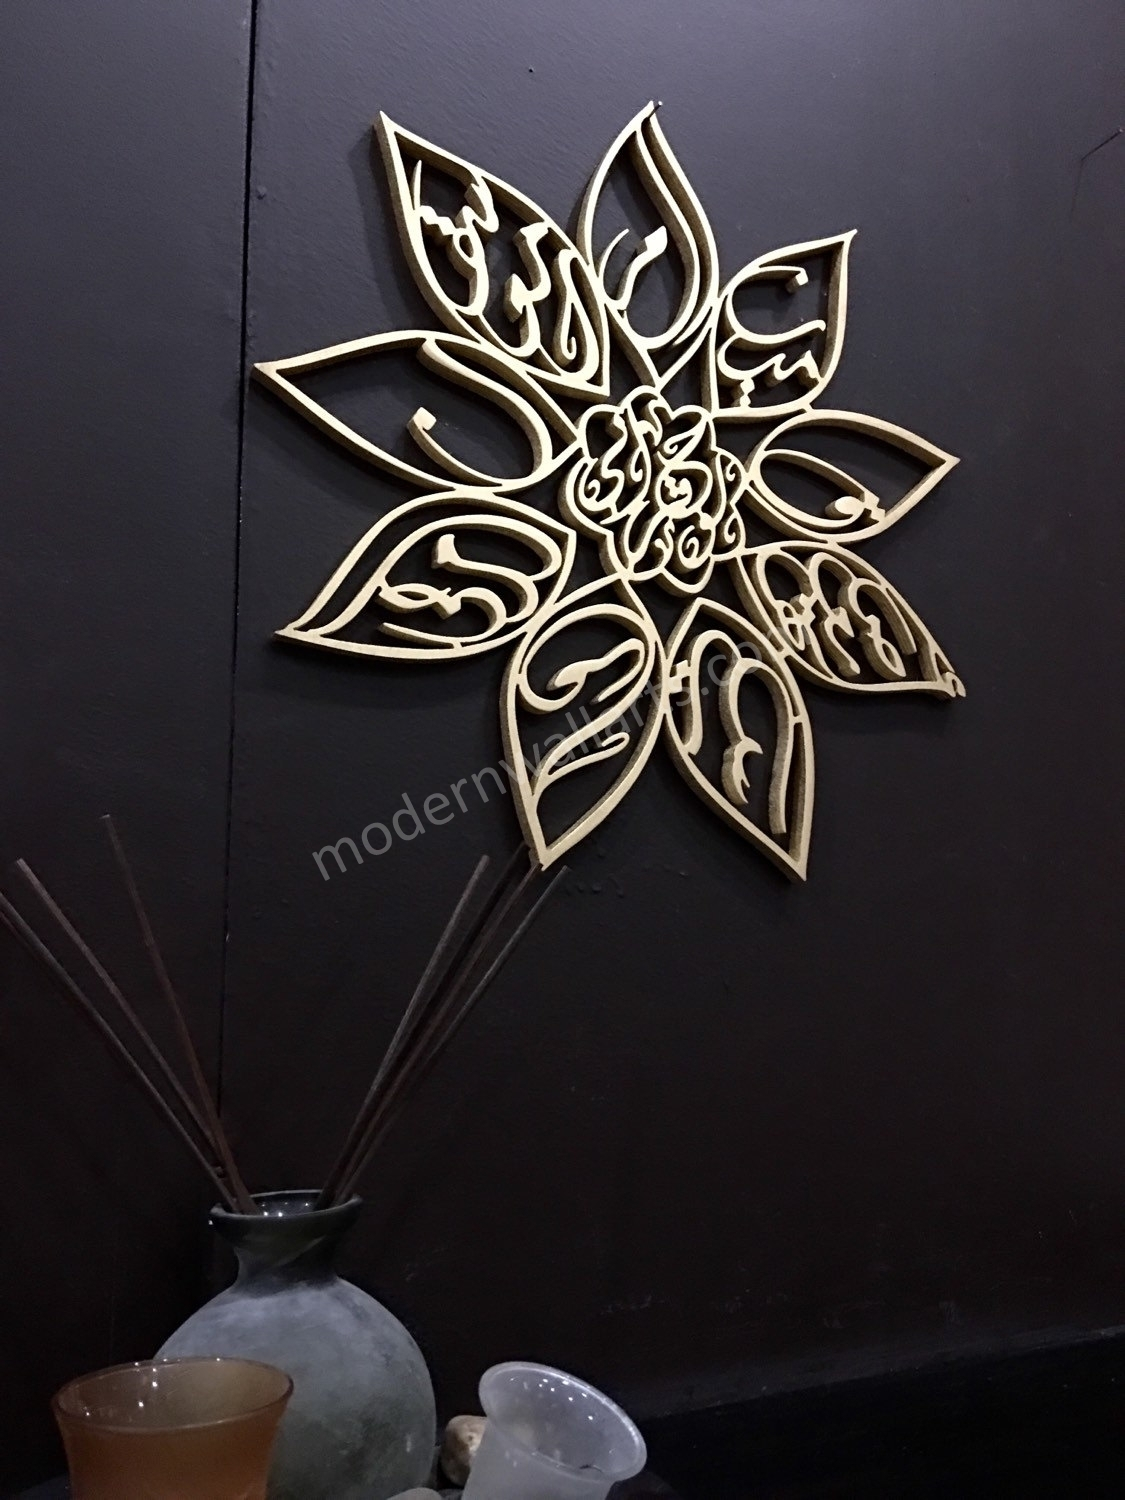 Loh E Qurani Art For Spiritual Protection. Islamic Wall Art. Modern In Best And Newest Islamic Wall Art (Gallery 5 of 15)